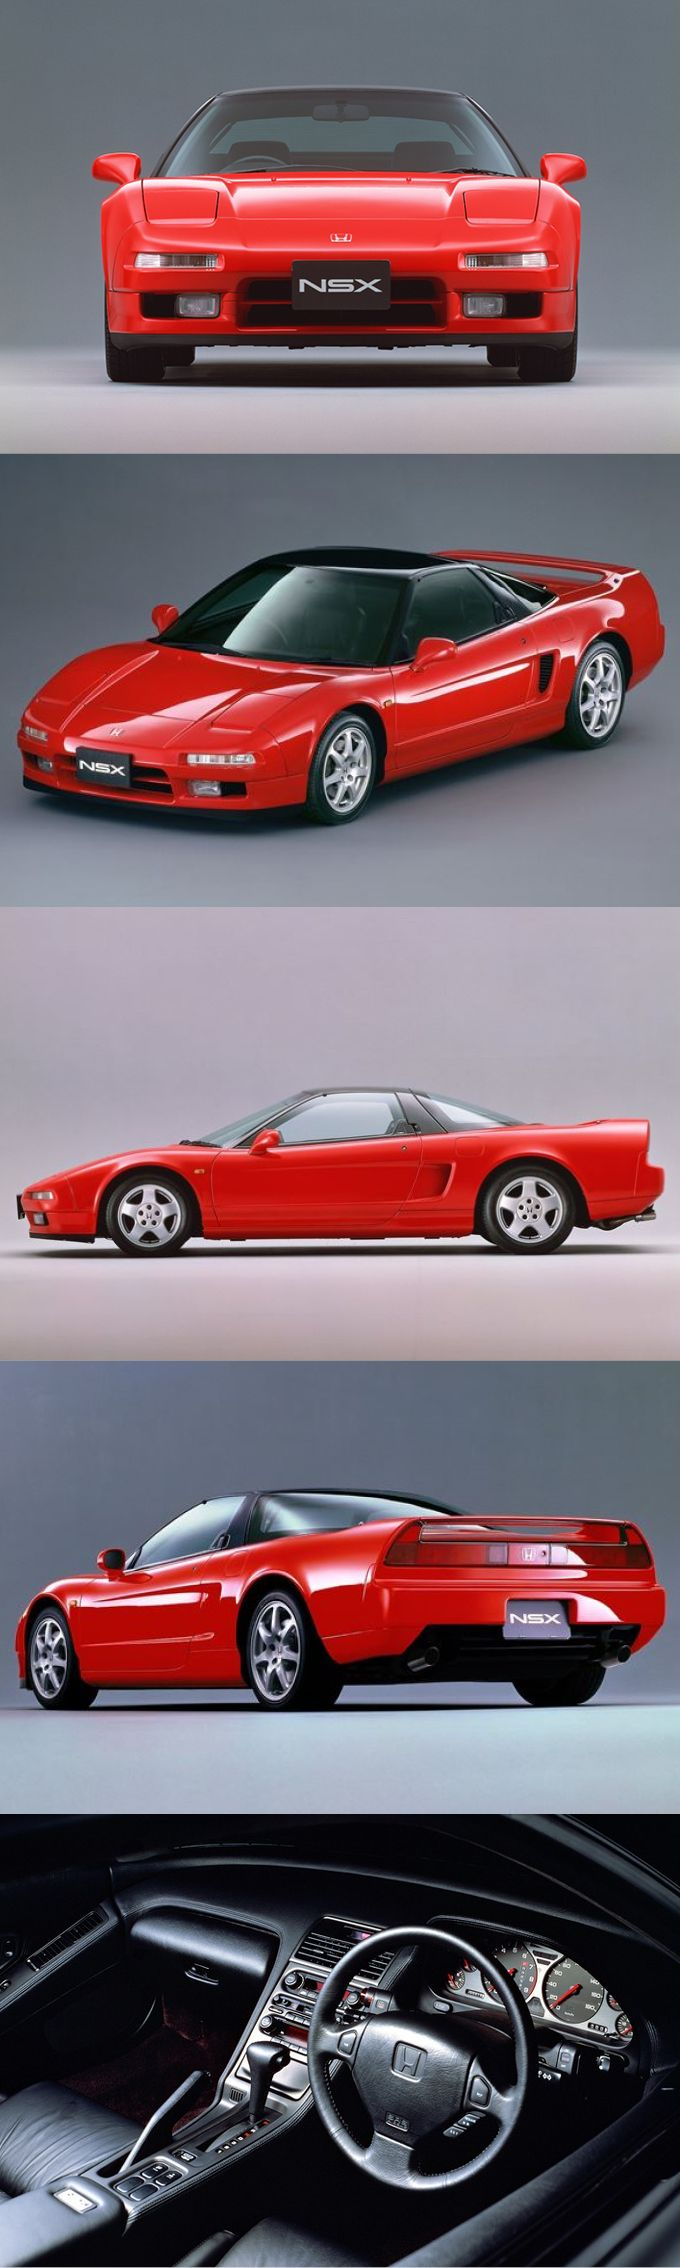 Honda's memories 1990 #Honda NSX / 290hp / red / Japan